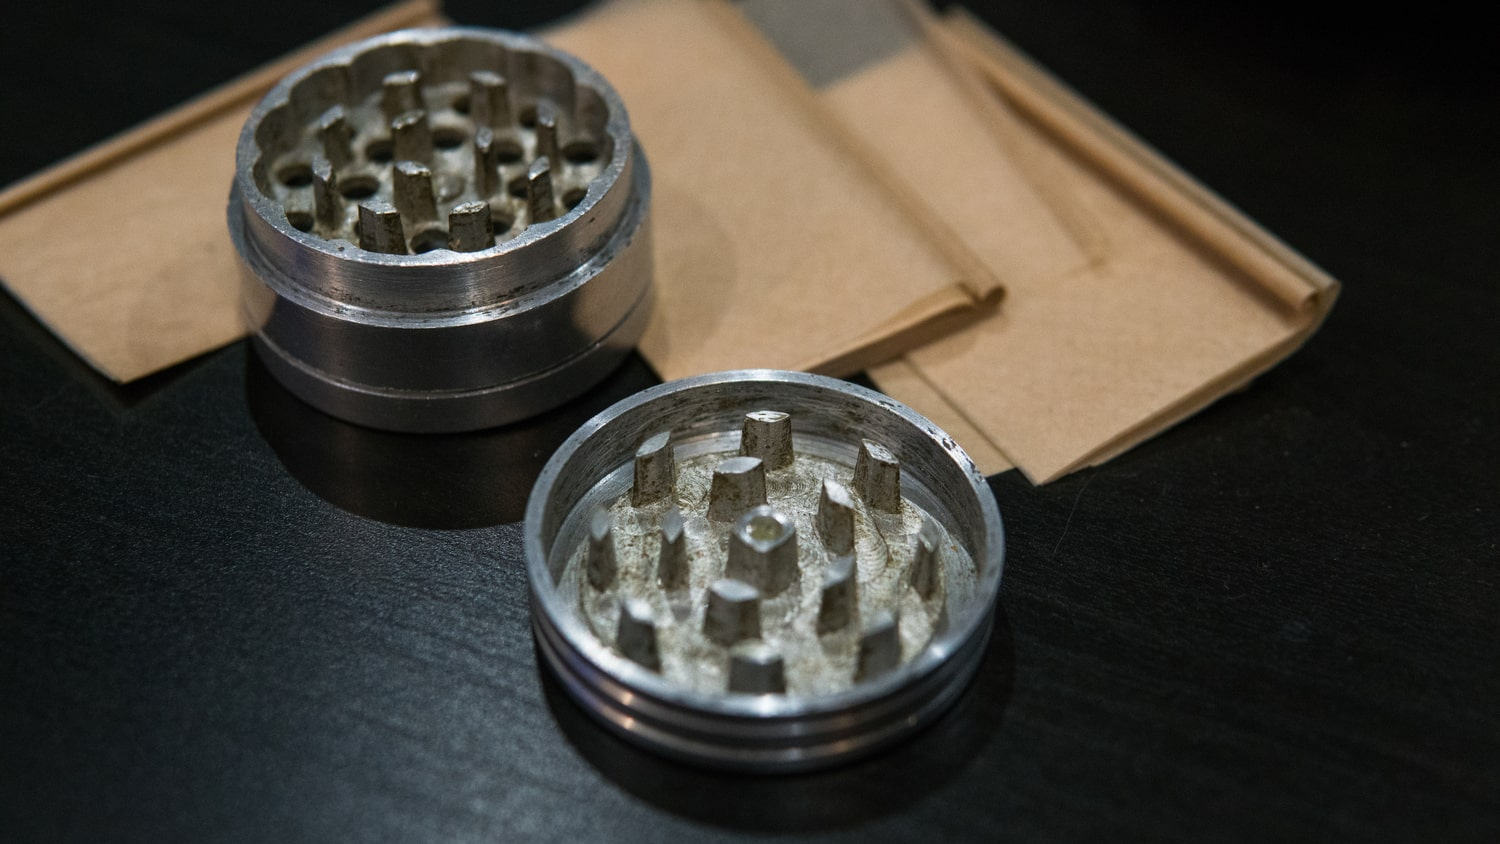 An herb grinder and rolling papers, two items that could be considered drug paraphernalia under ARS 13-3415